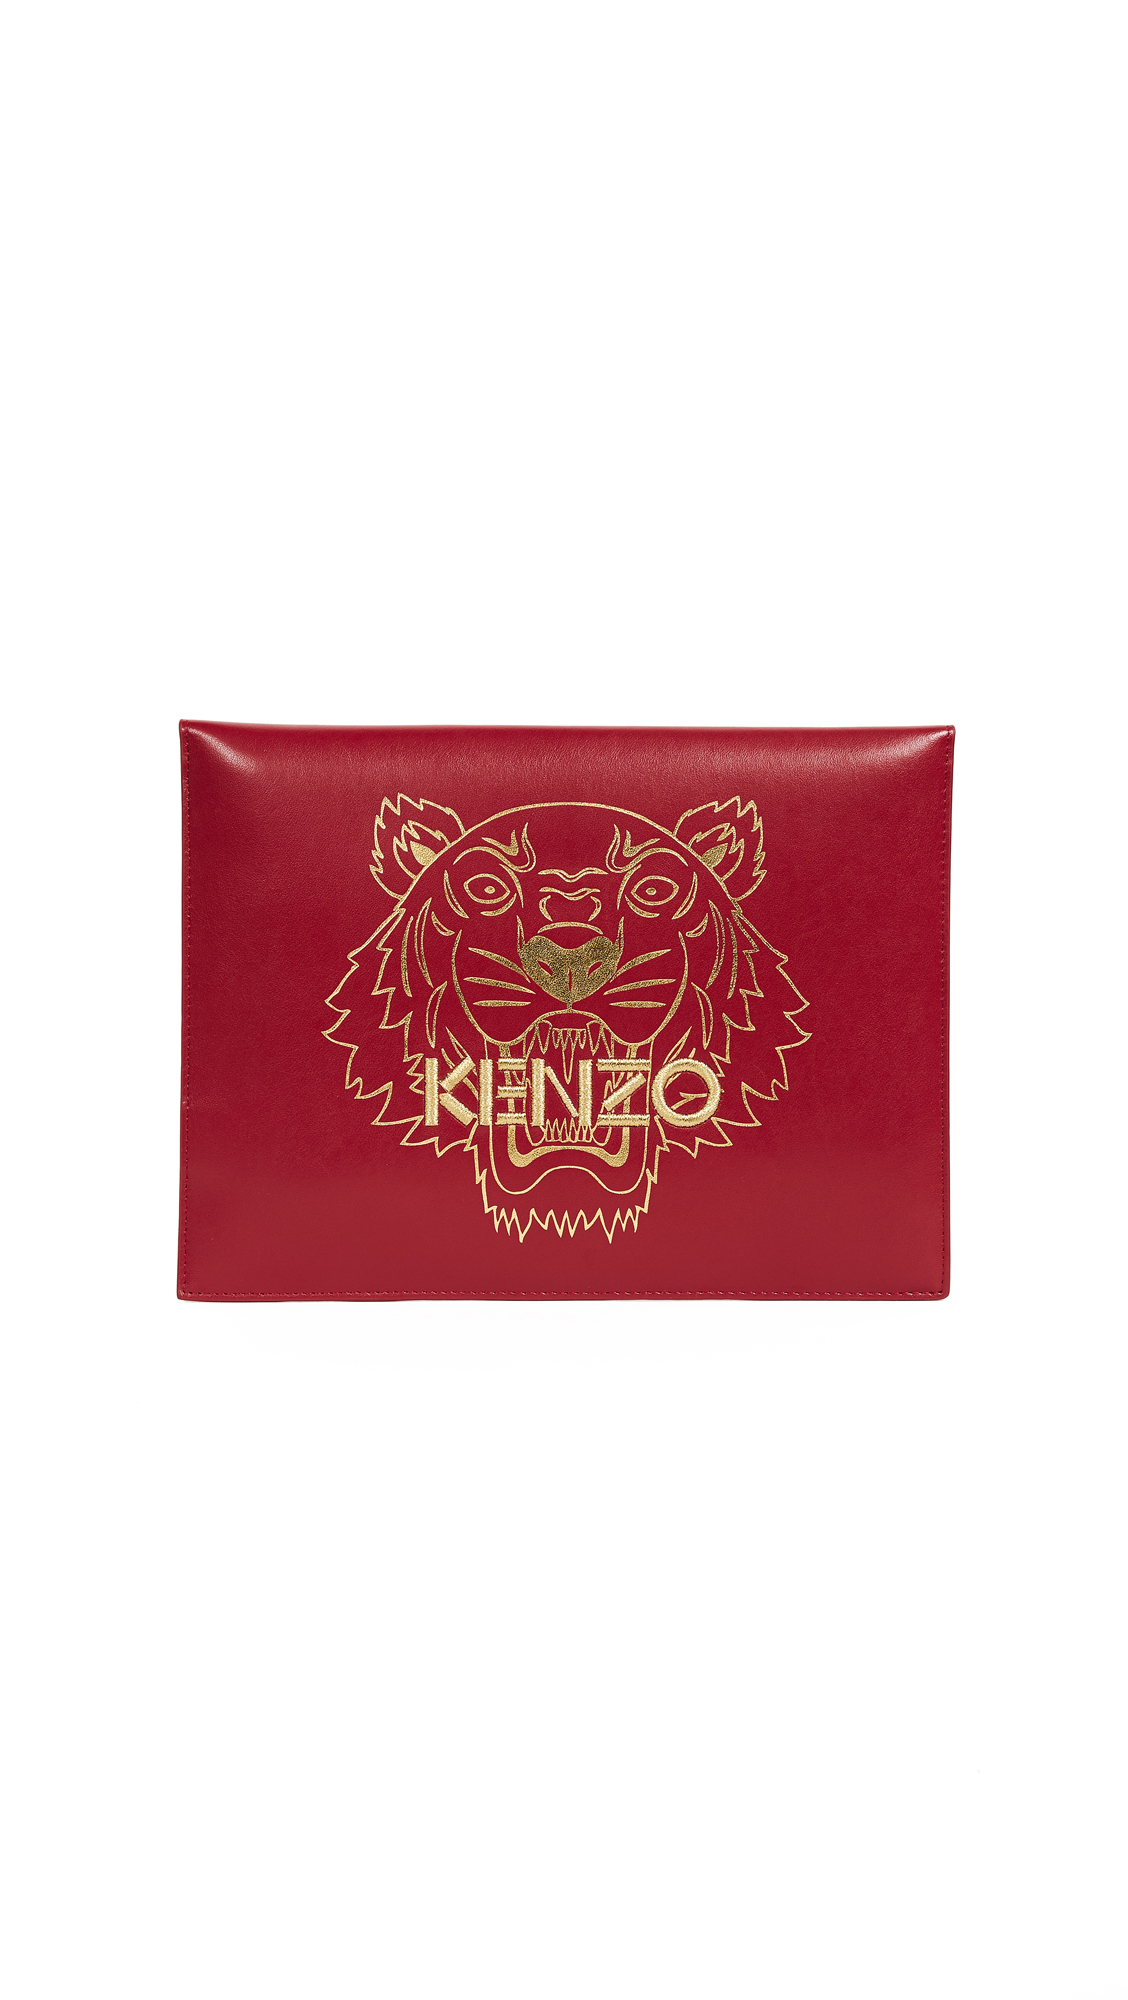 KENZO Kenzo Tiger Pouch - Red